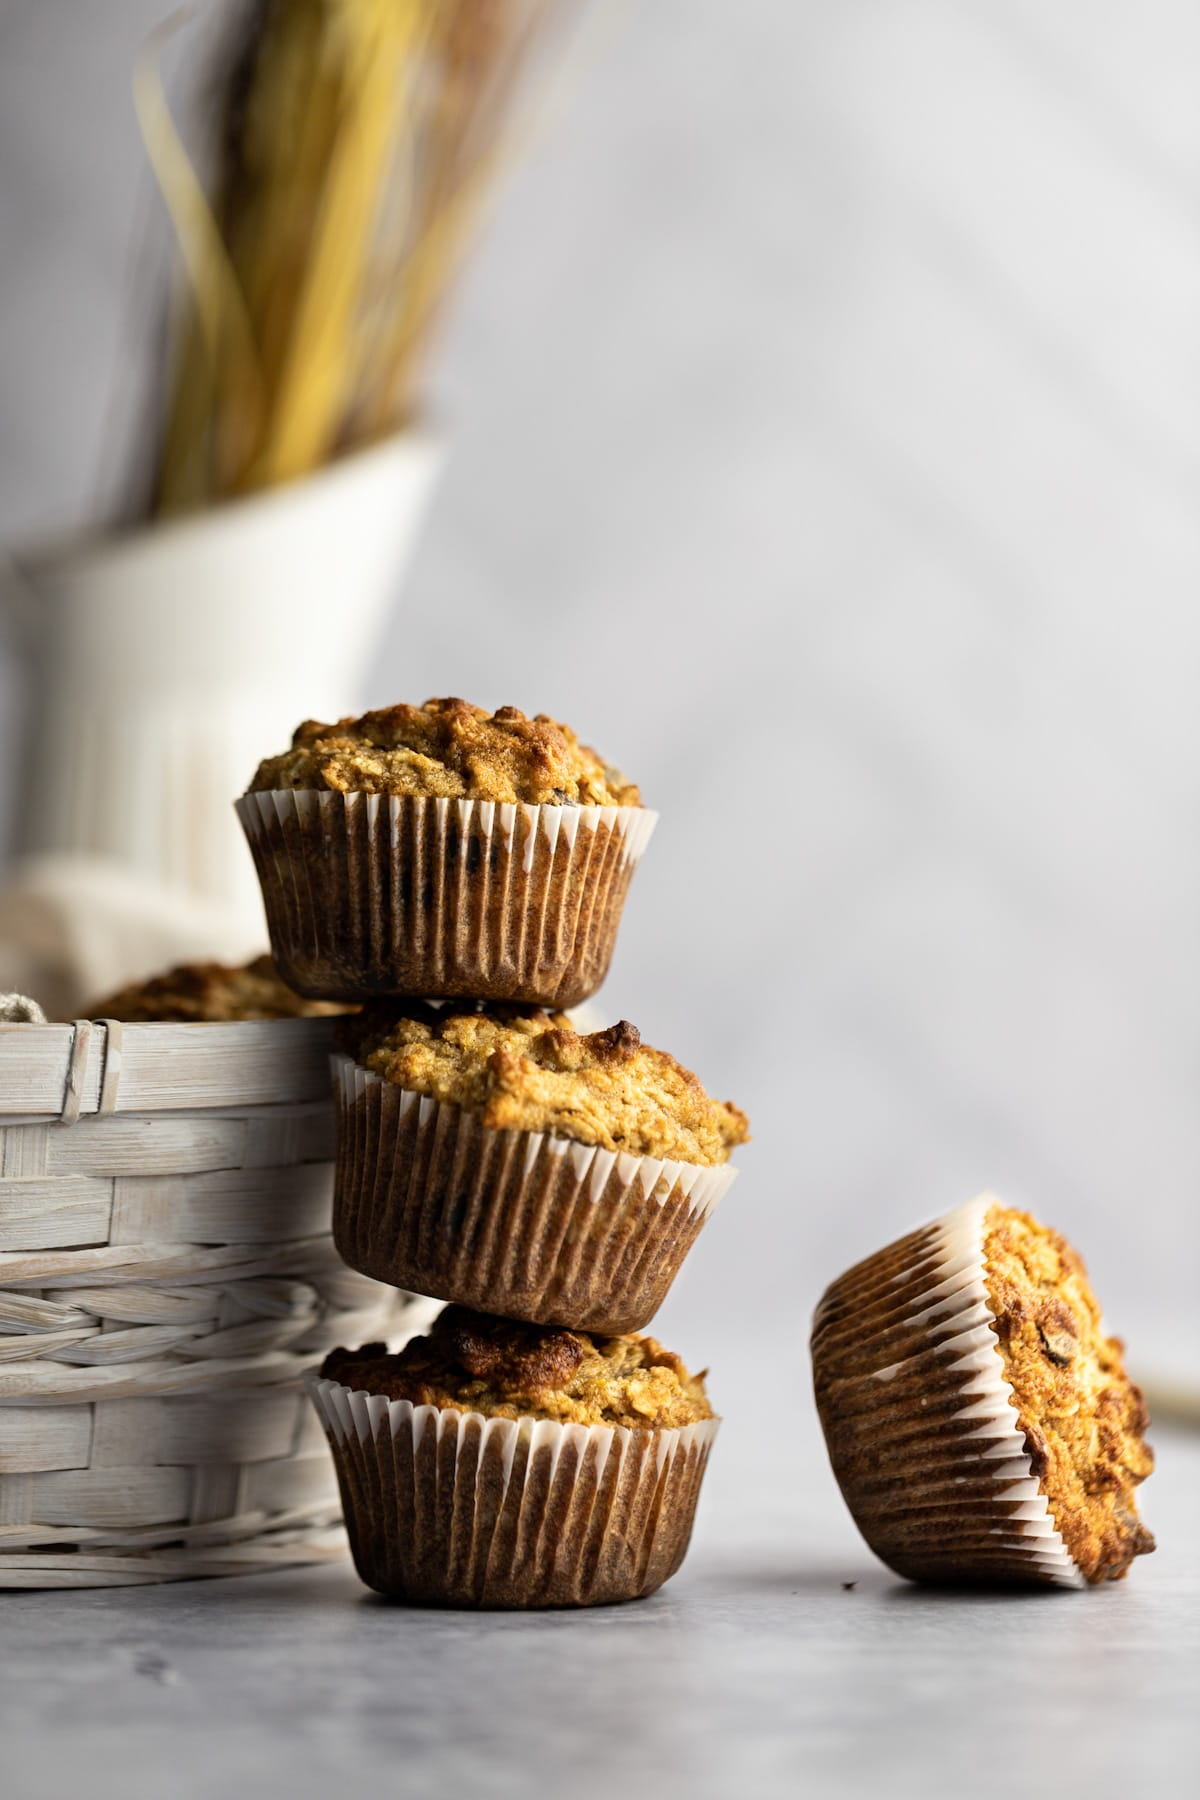 A stack of three almond flour banana muffins leaning against a basket, with one muffin tipped on its side lying beside the stack.